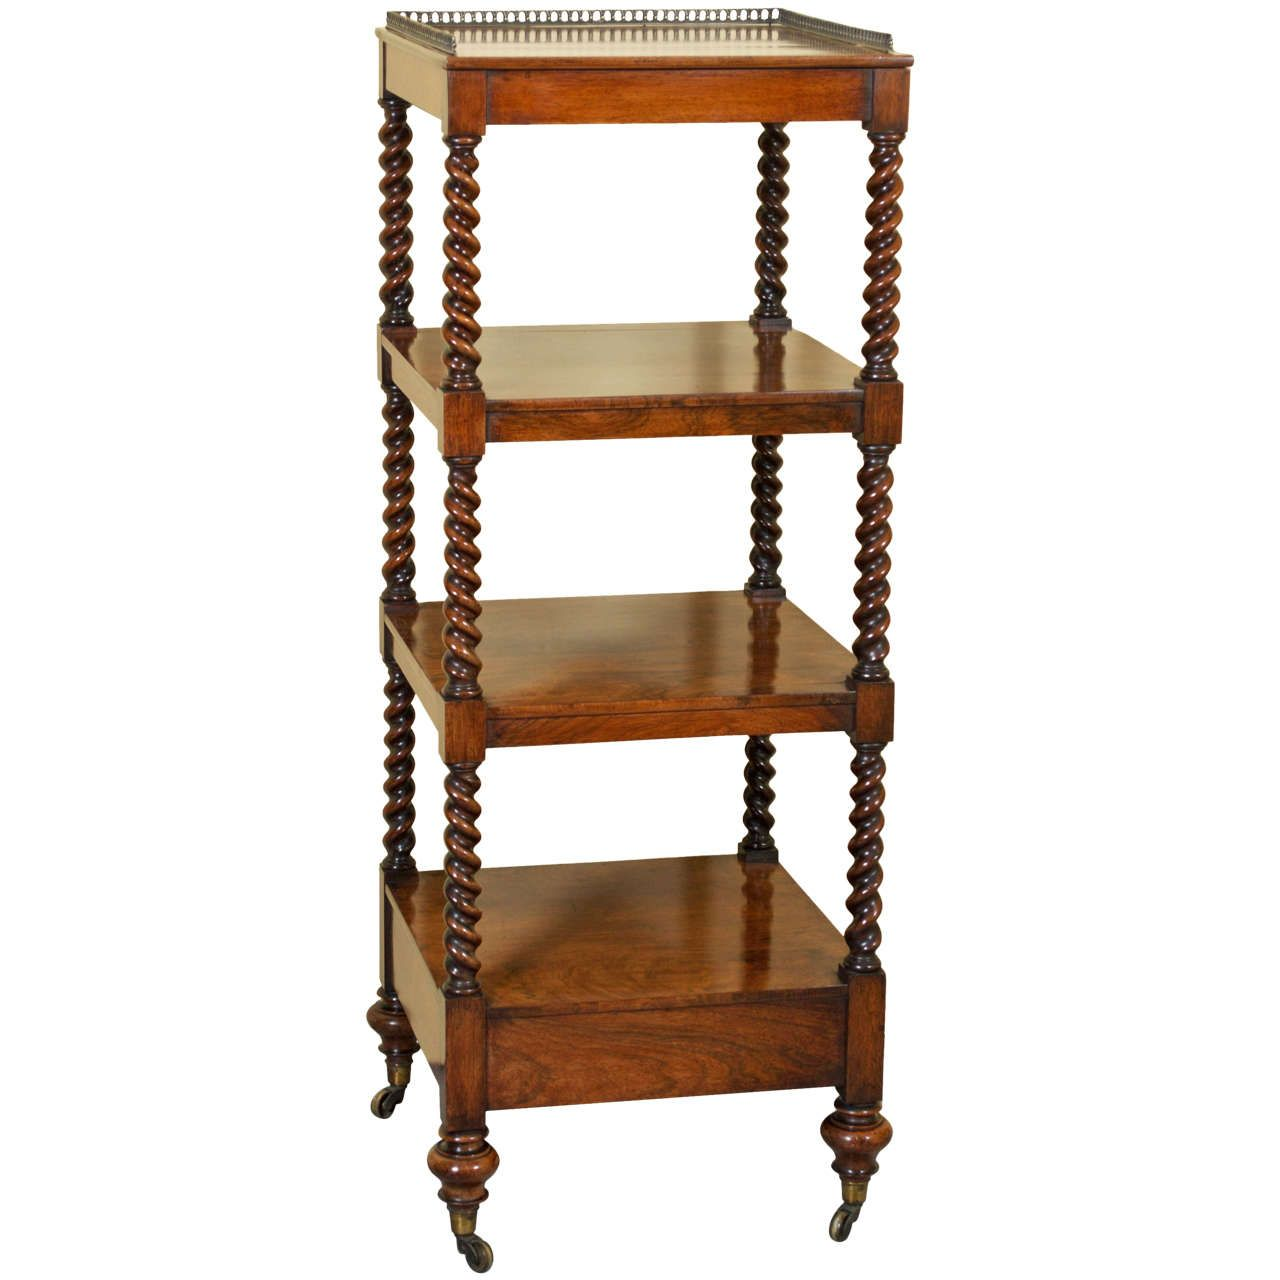 Ordinaire 19th Century Victorian Rosewood Whatnot Or Etagere